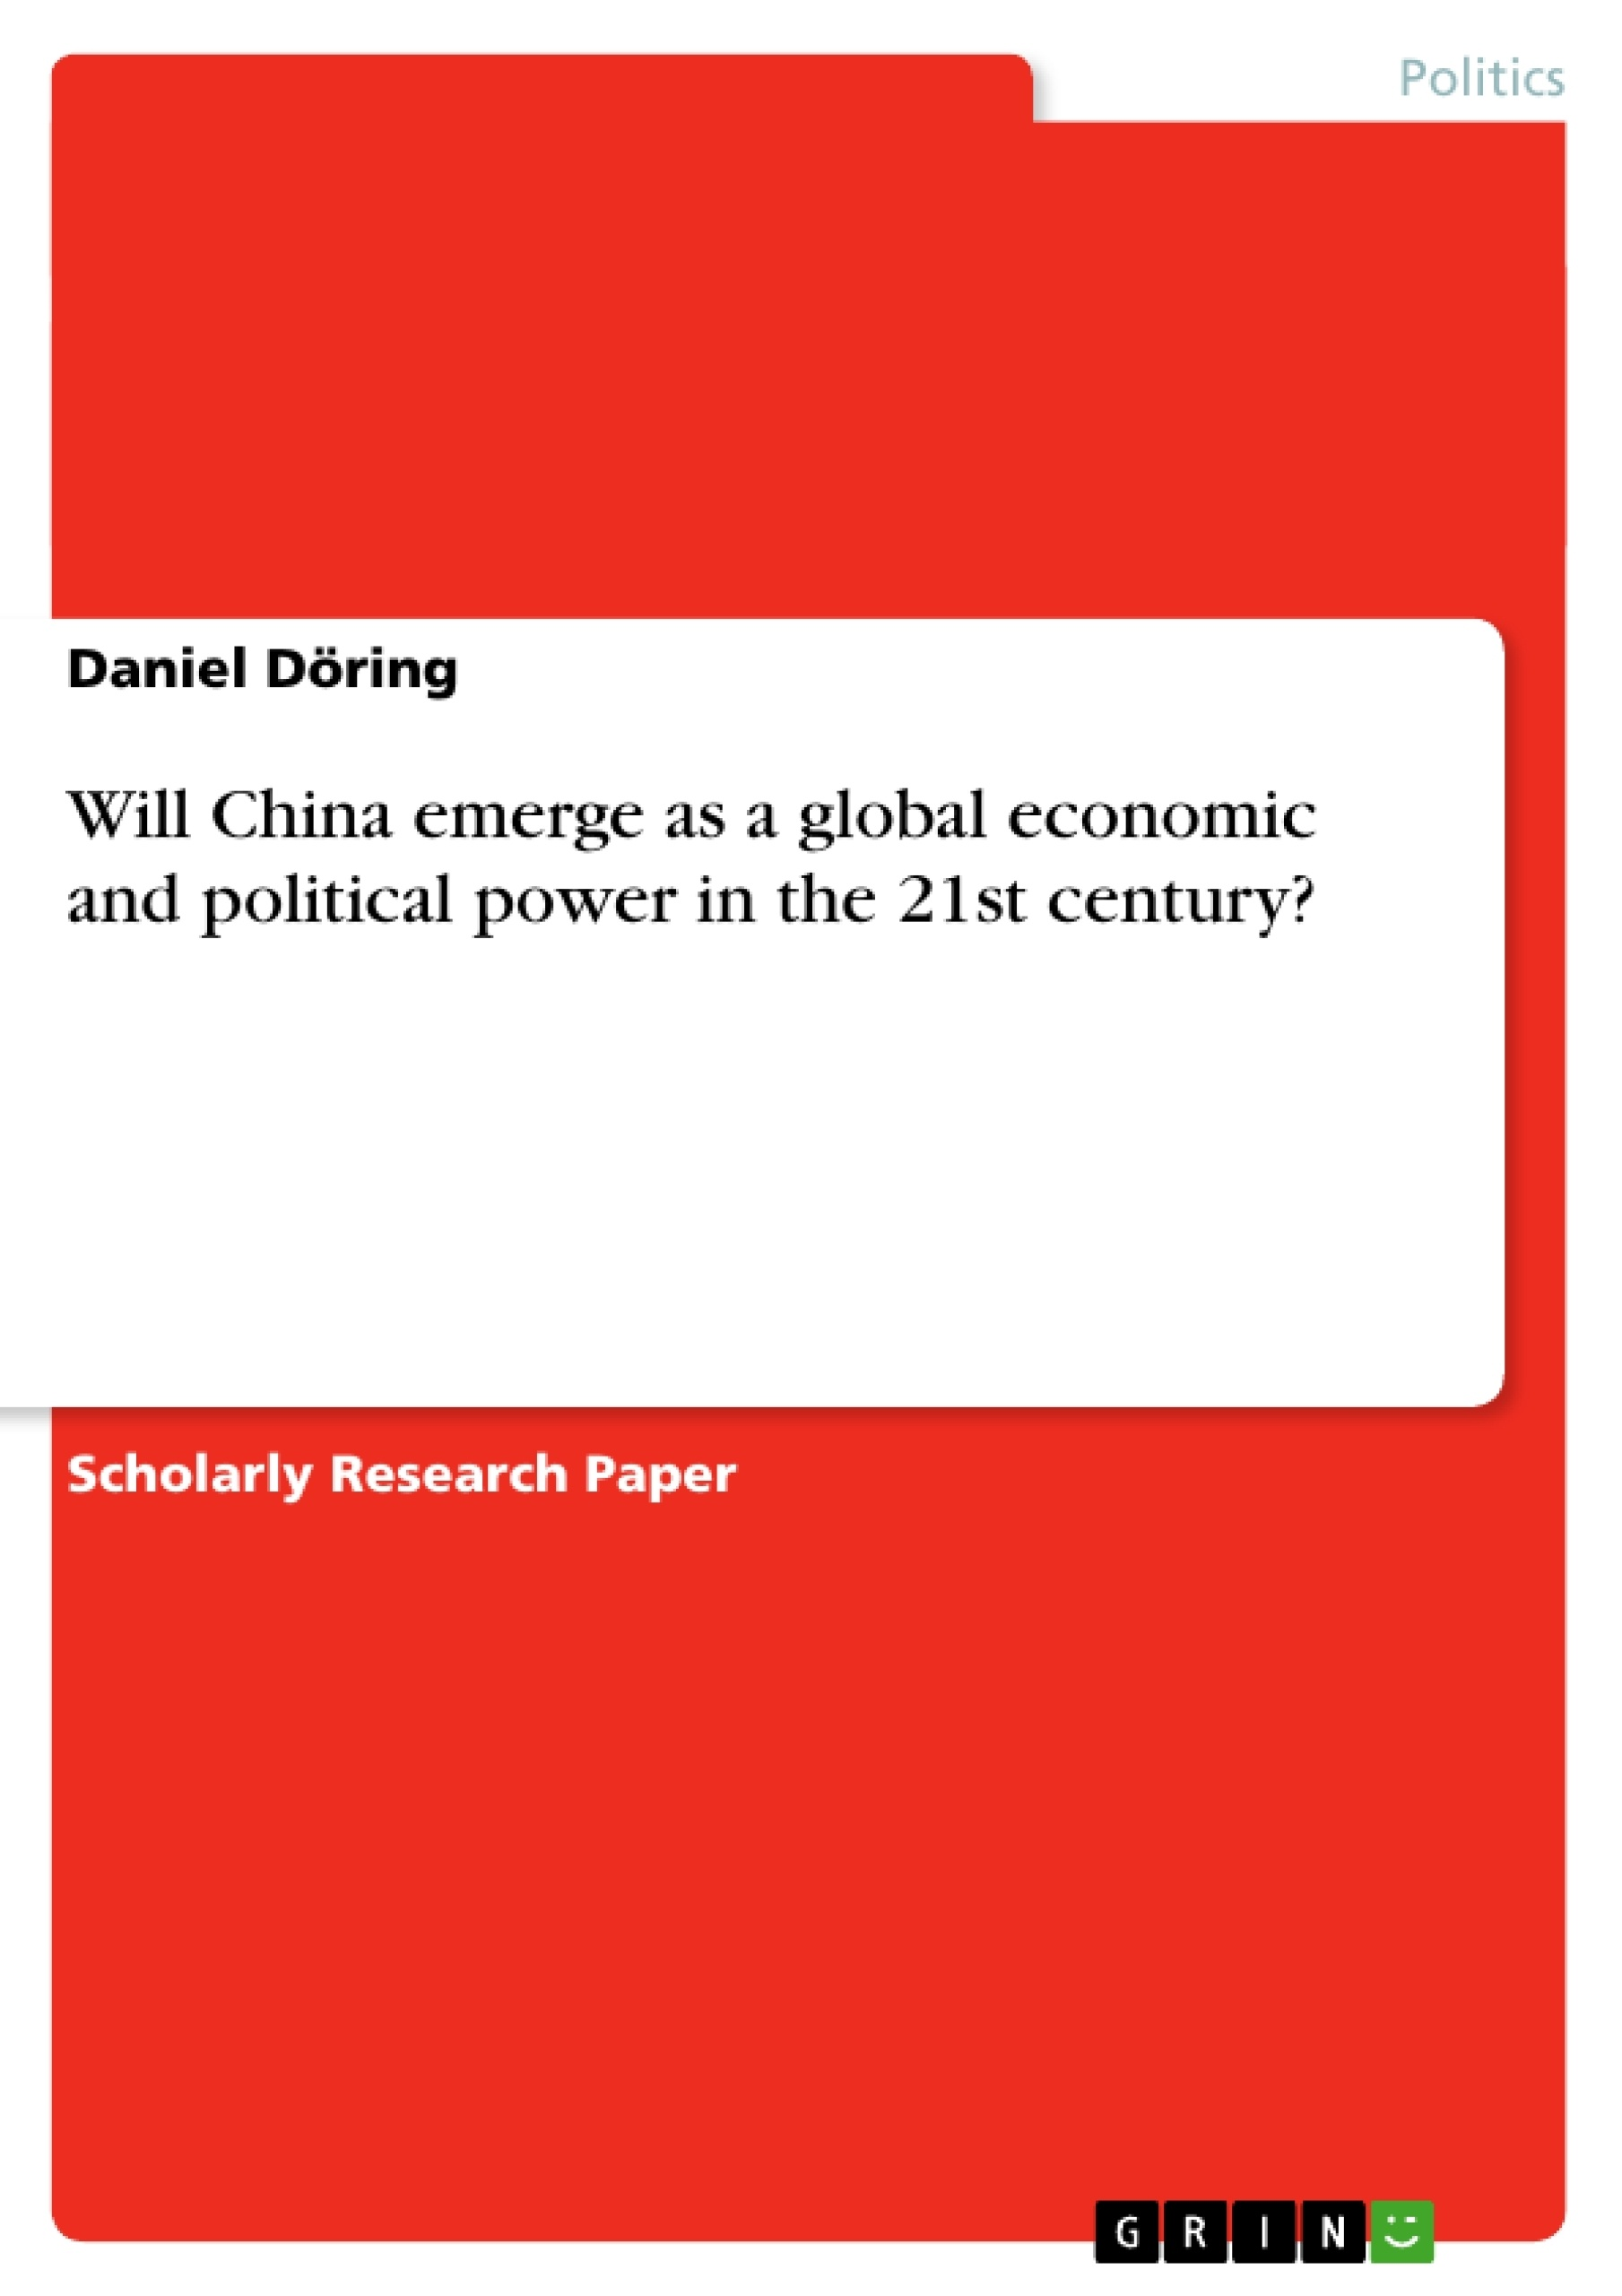 Title: Will China emerge as a global economic and political power in the 21st century?